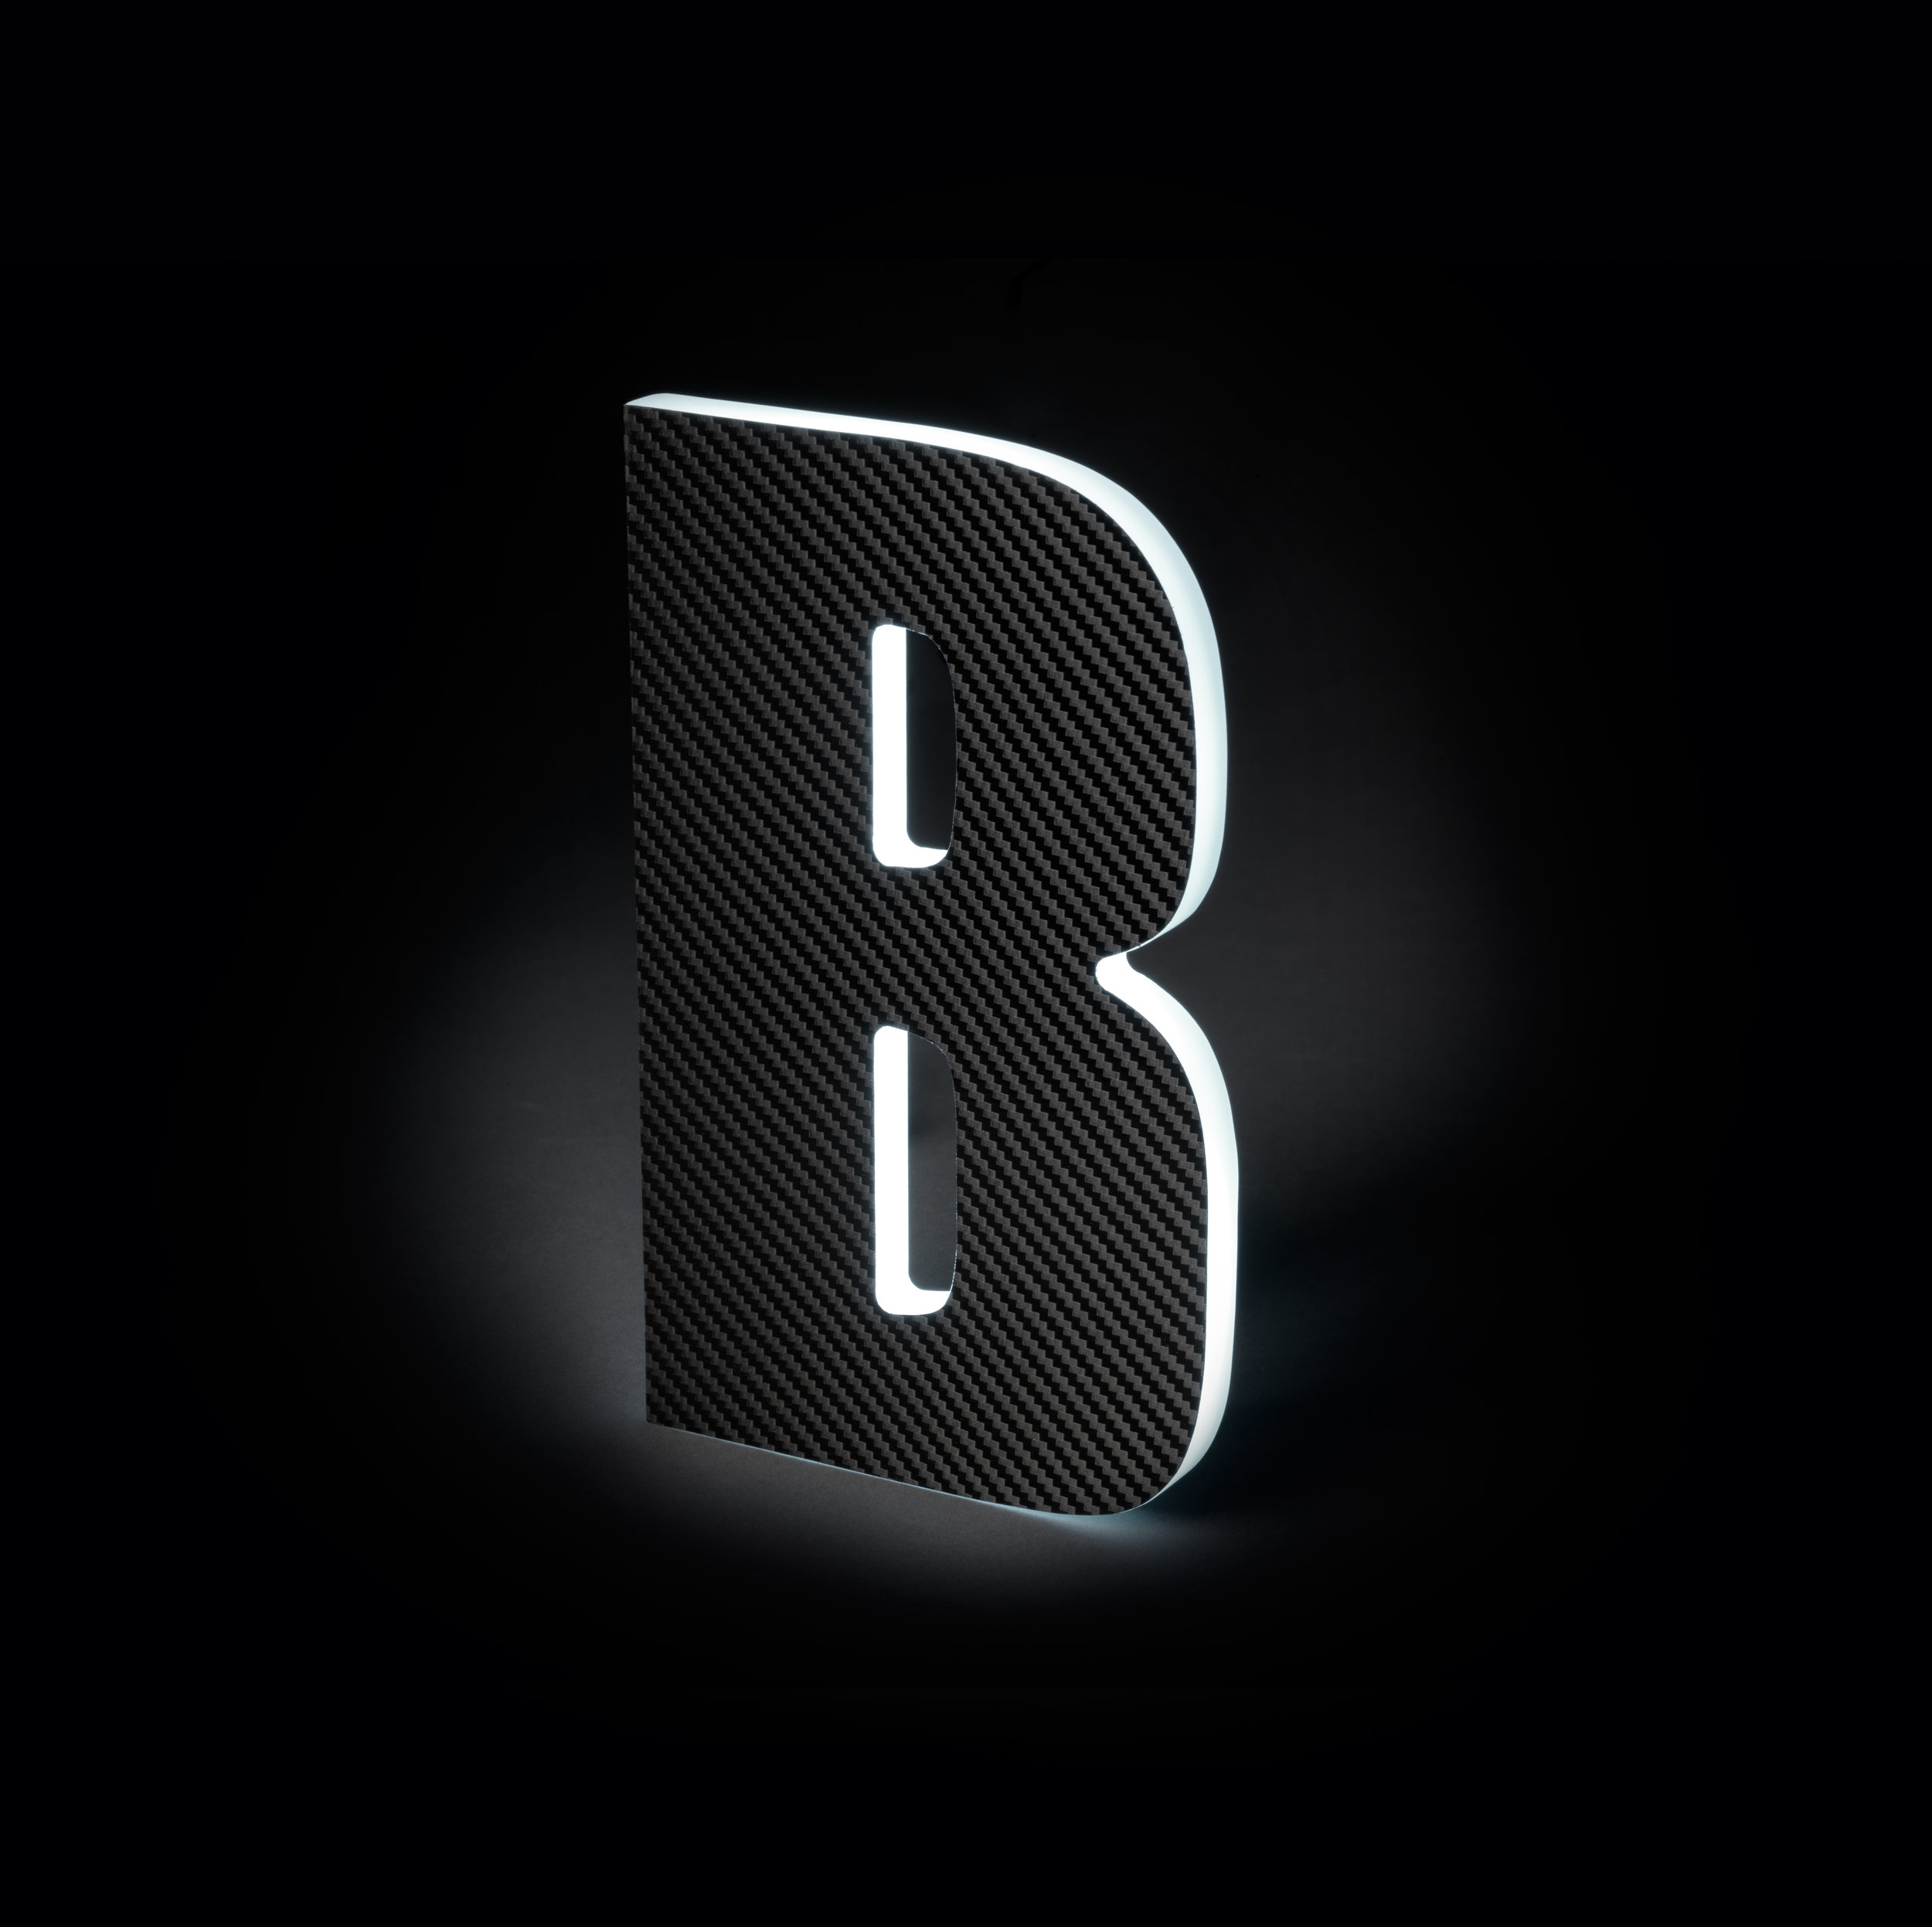 Sidelit Carbon Fiber Black Vinyl with Glowing Sides (thin)